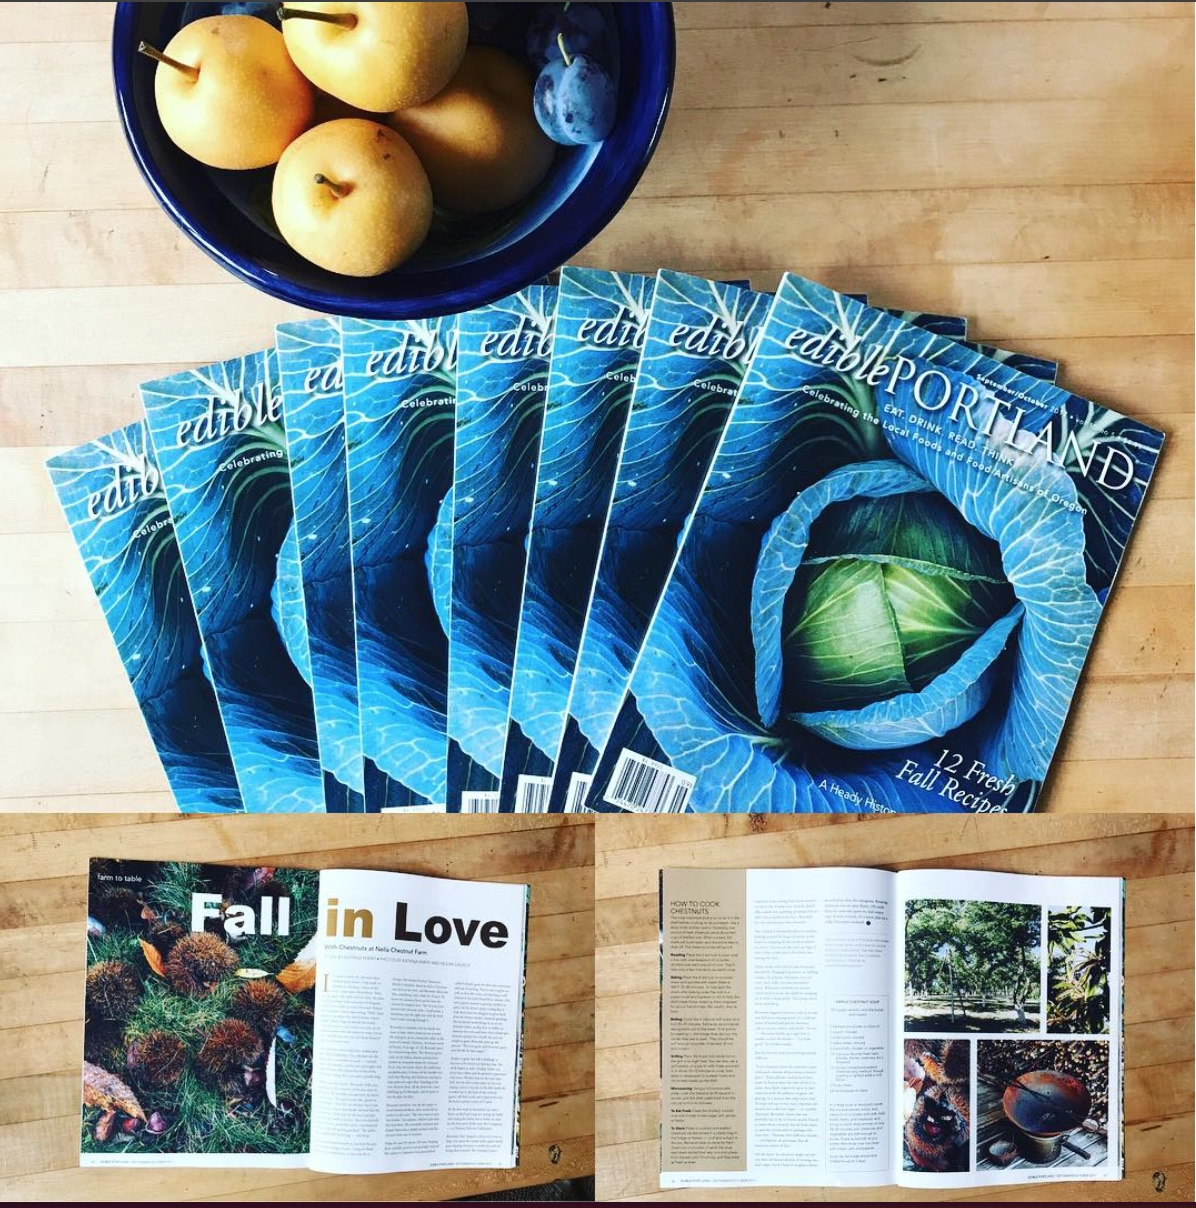 edible Portland - Nella Chestnut Farm Sept/Oct 2017 Issue